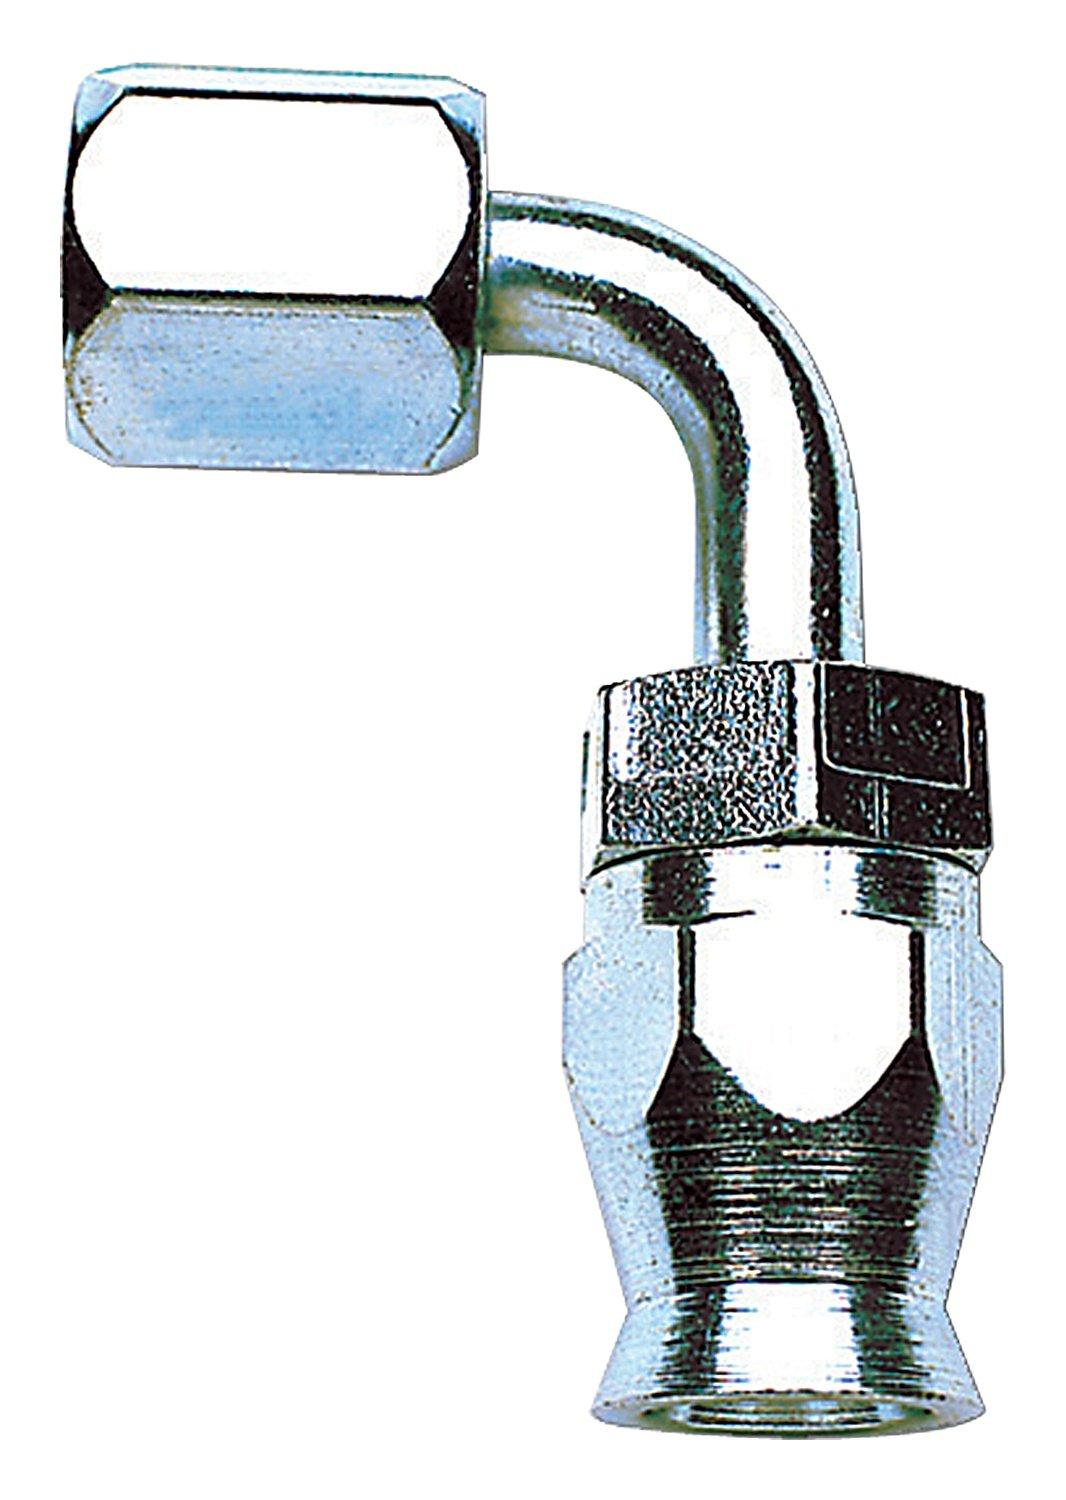 Russell 620491 - Russell Powerflex AN Hose End Fittings